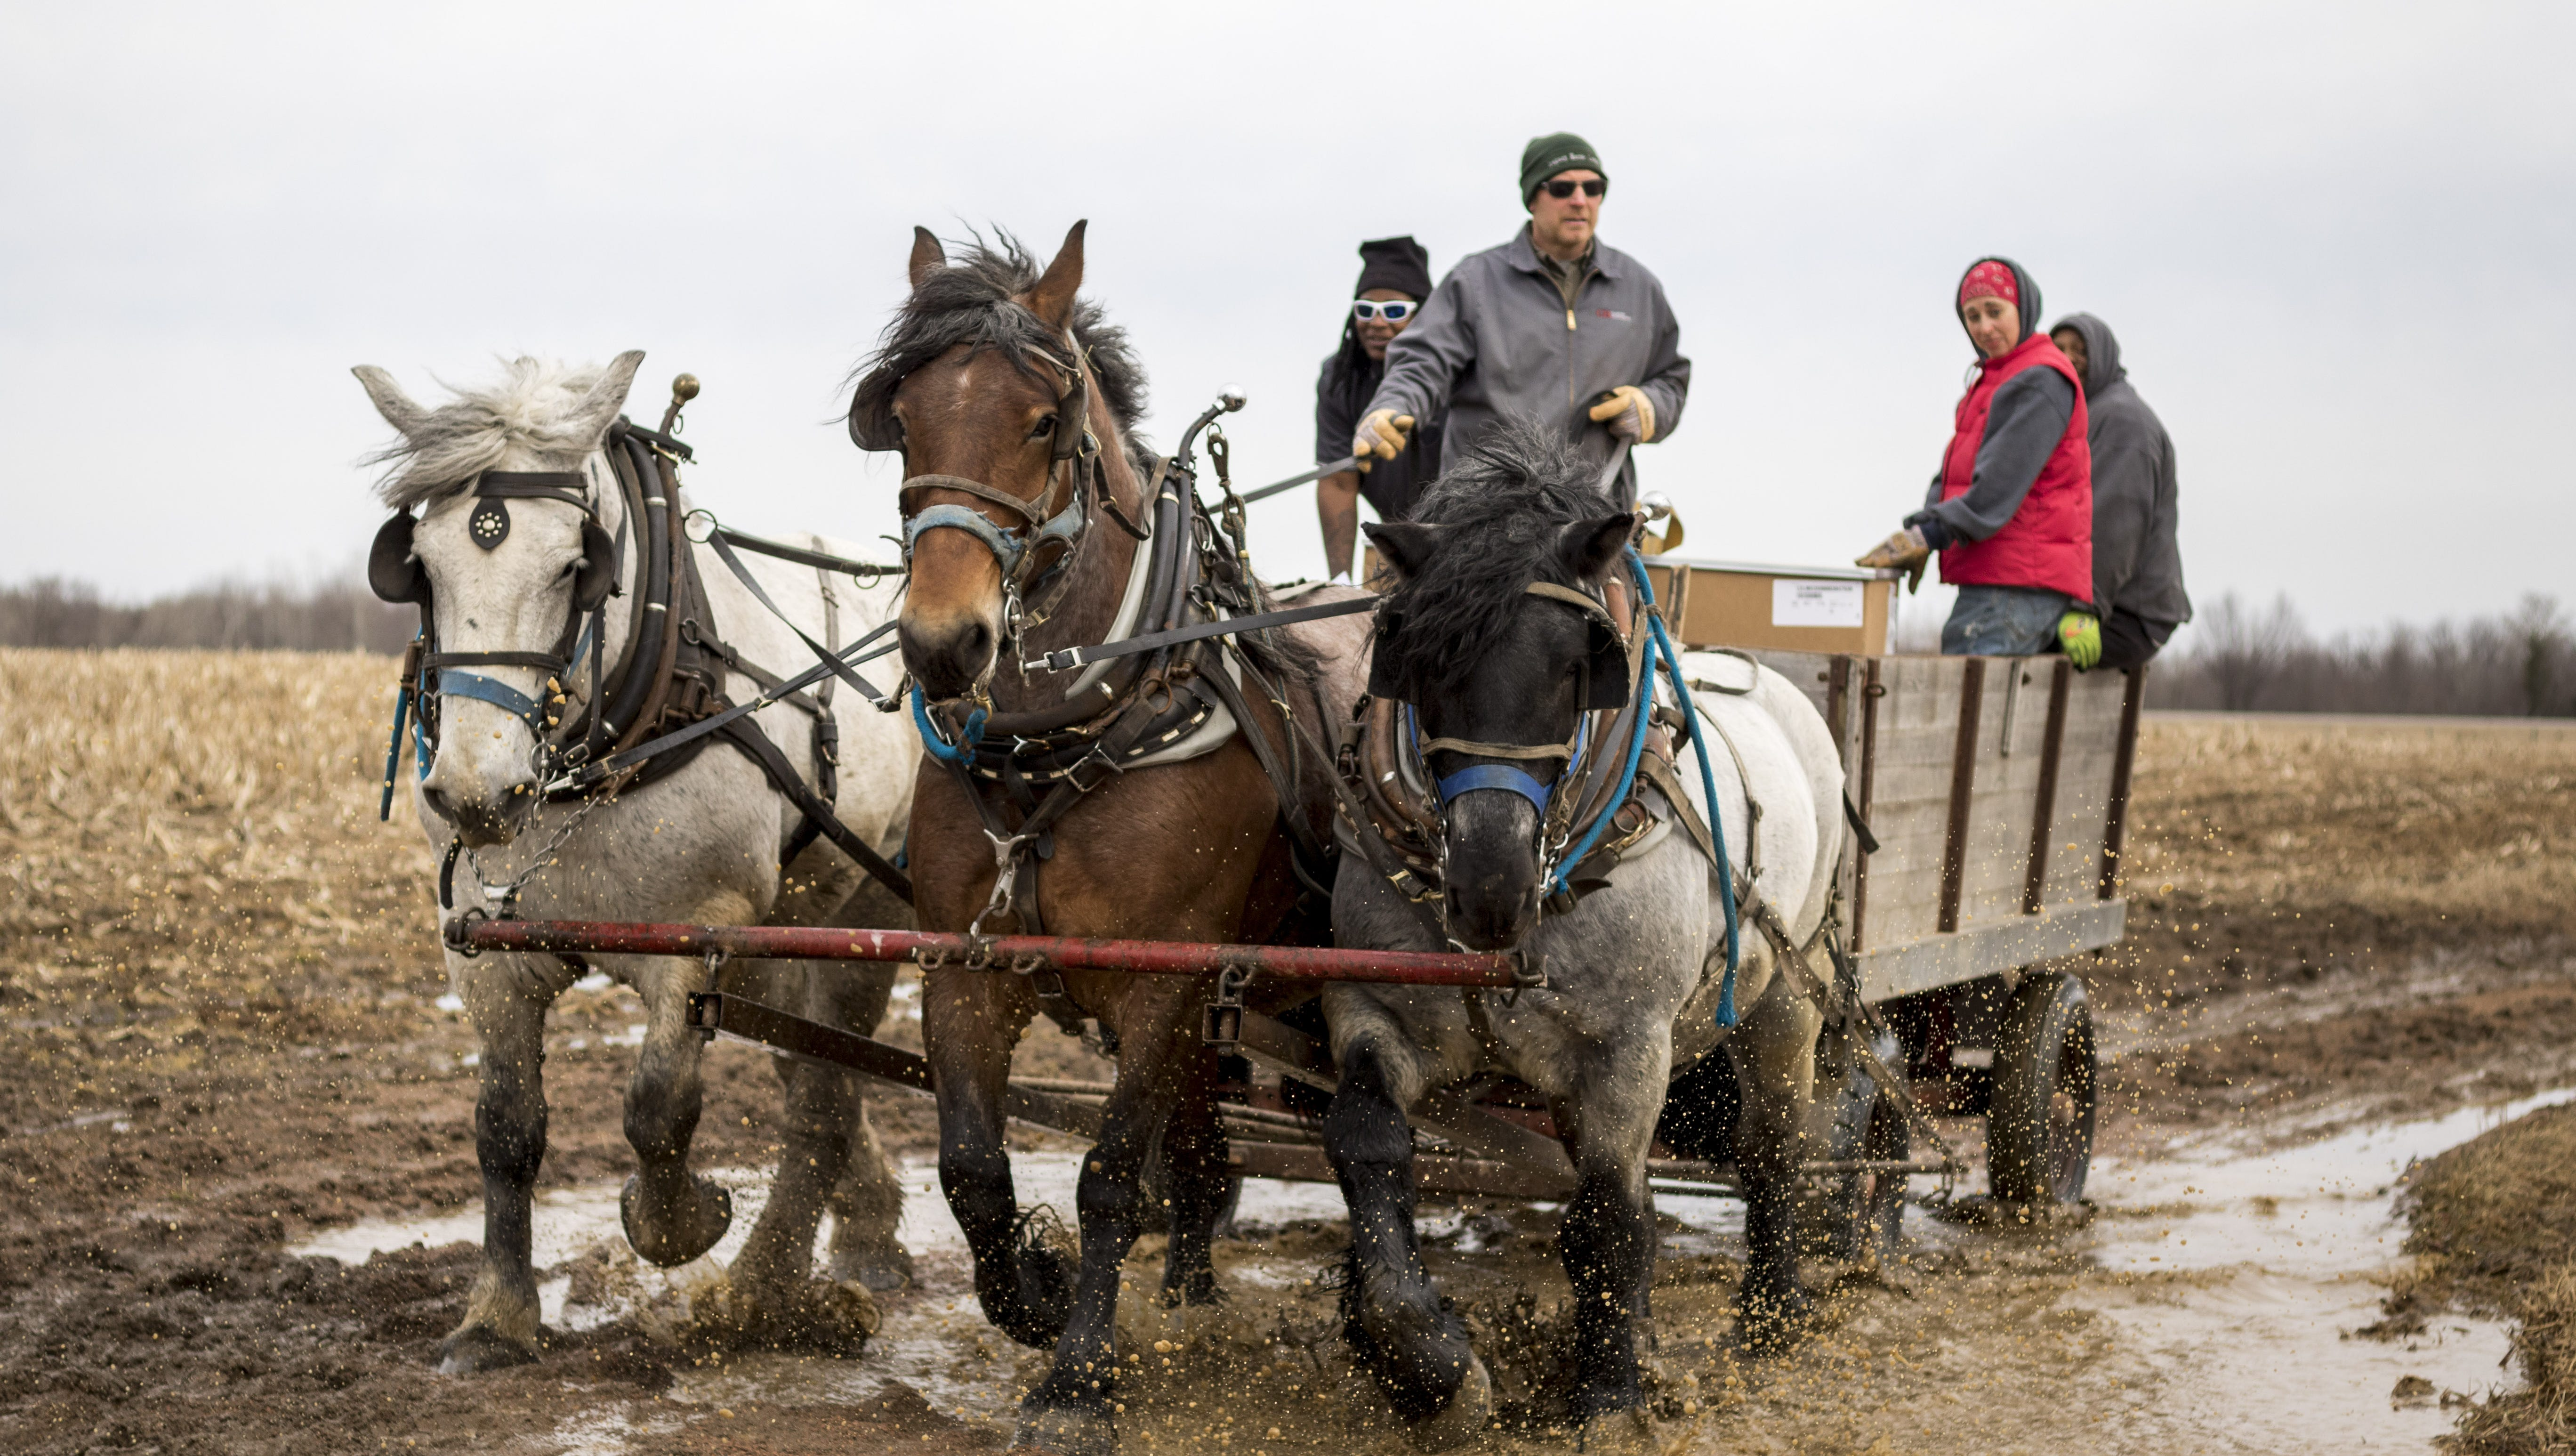 Horses Help U S Cellular Outfit Its Cellphone Towers In Rural Wisconsin